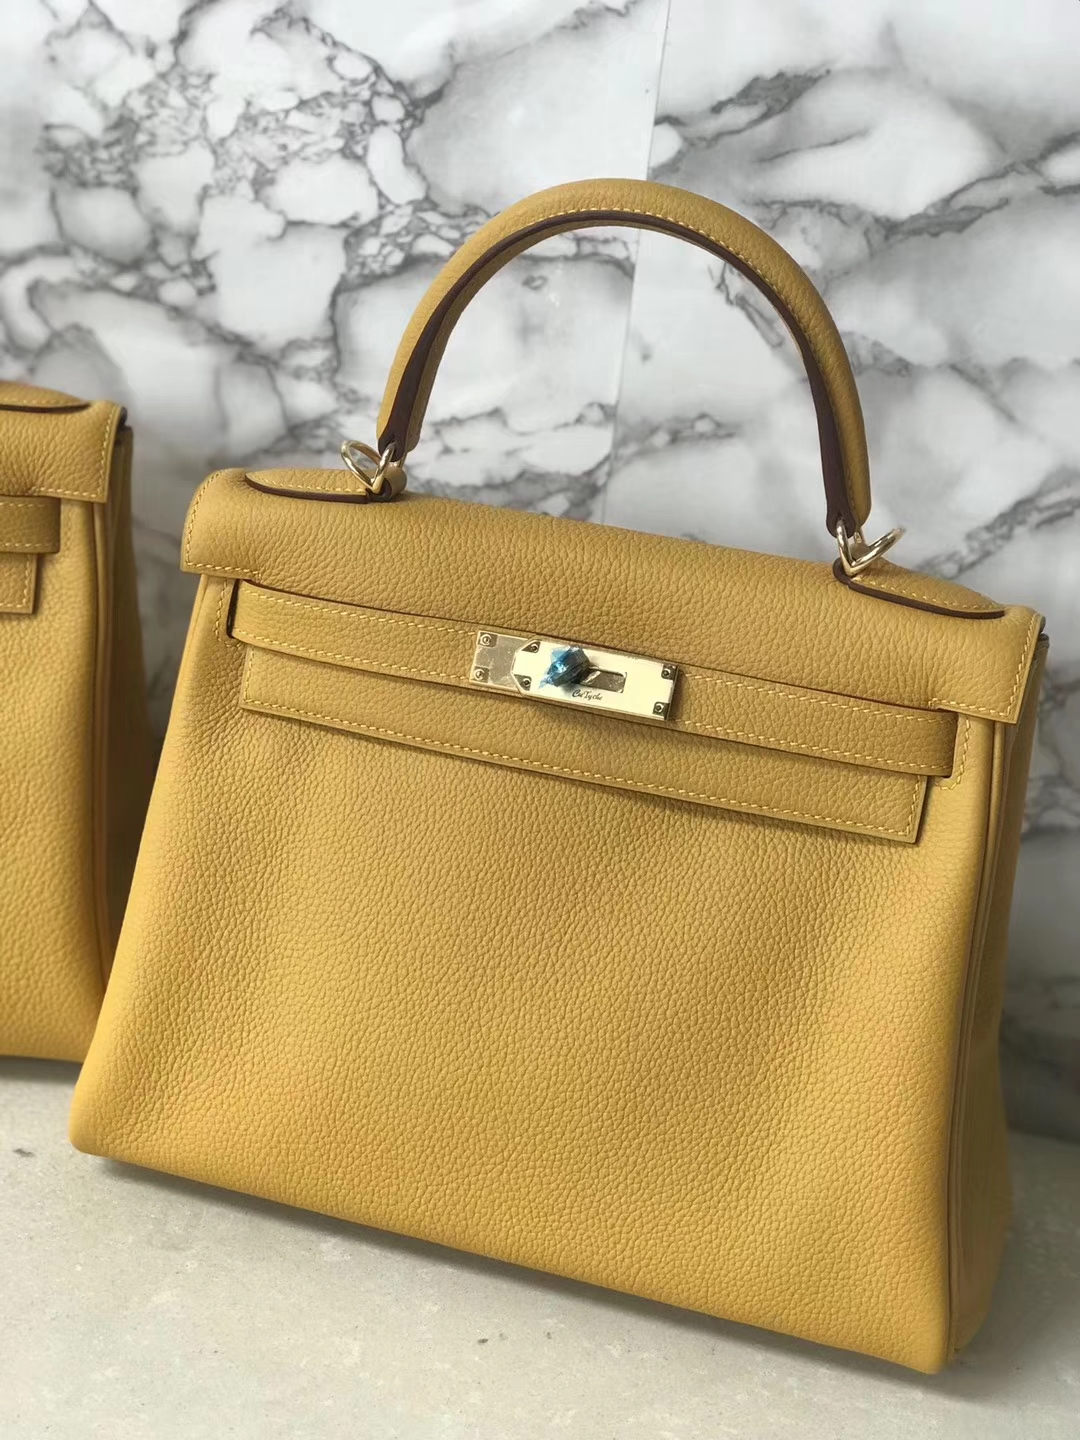 Wholesale Hermes Kelly Bag28CM in 9D Ambre Yellow Togo Leather Gold Hardware